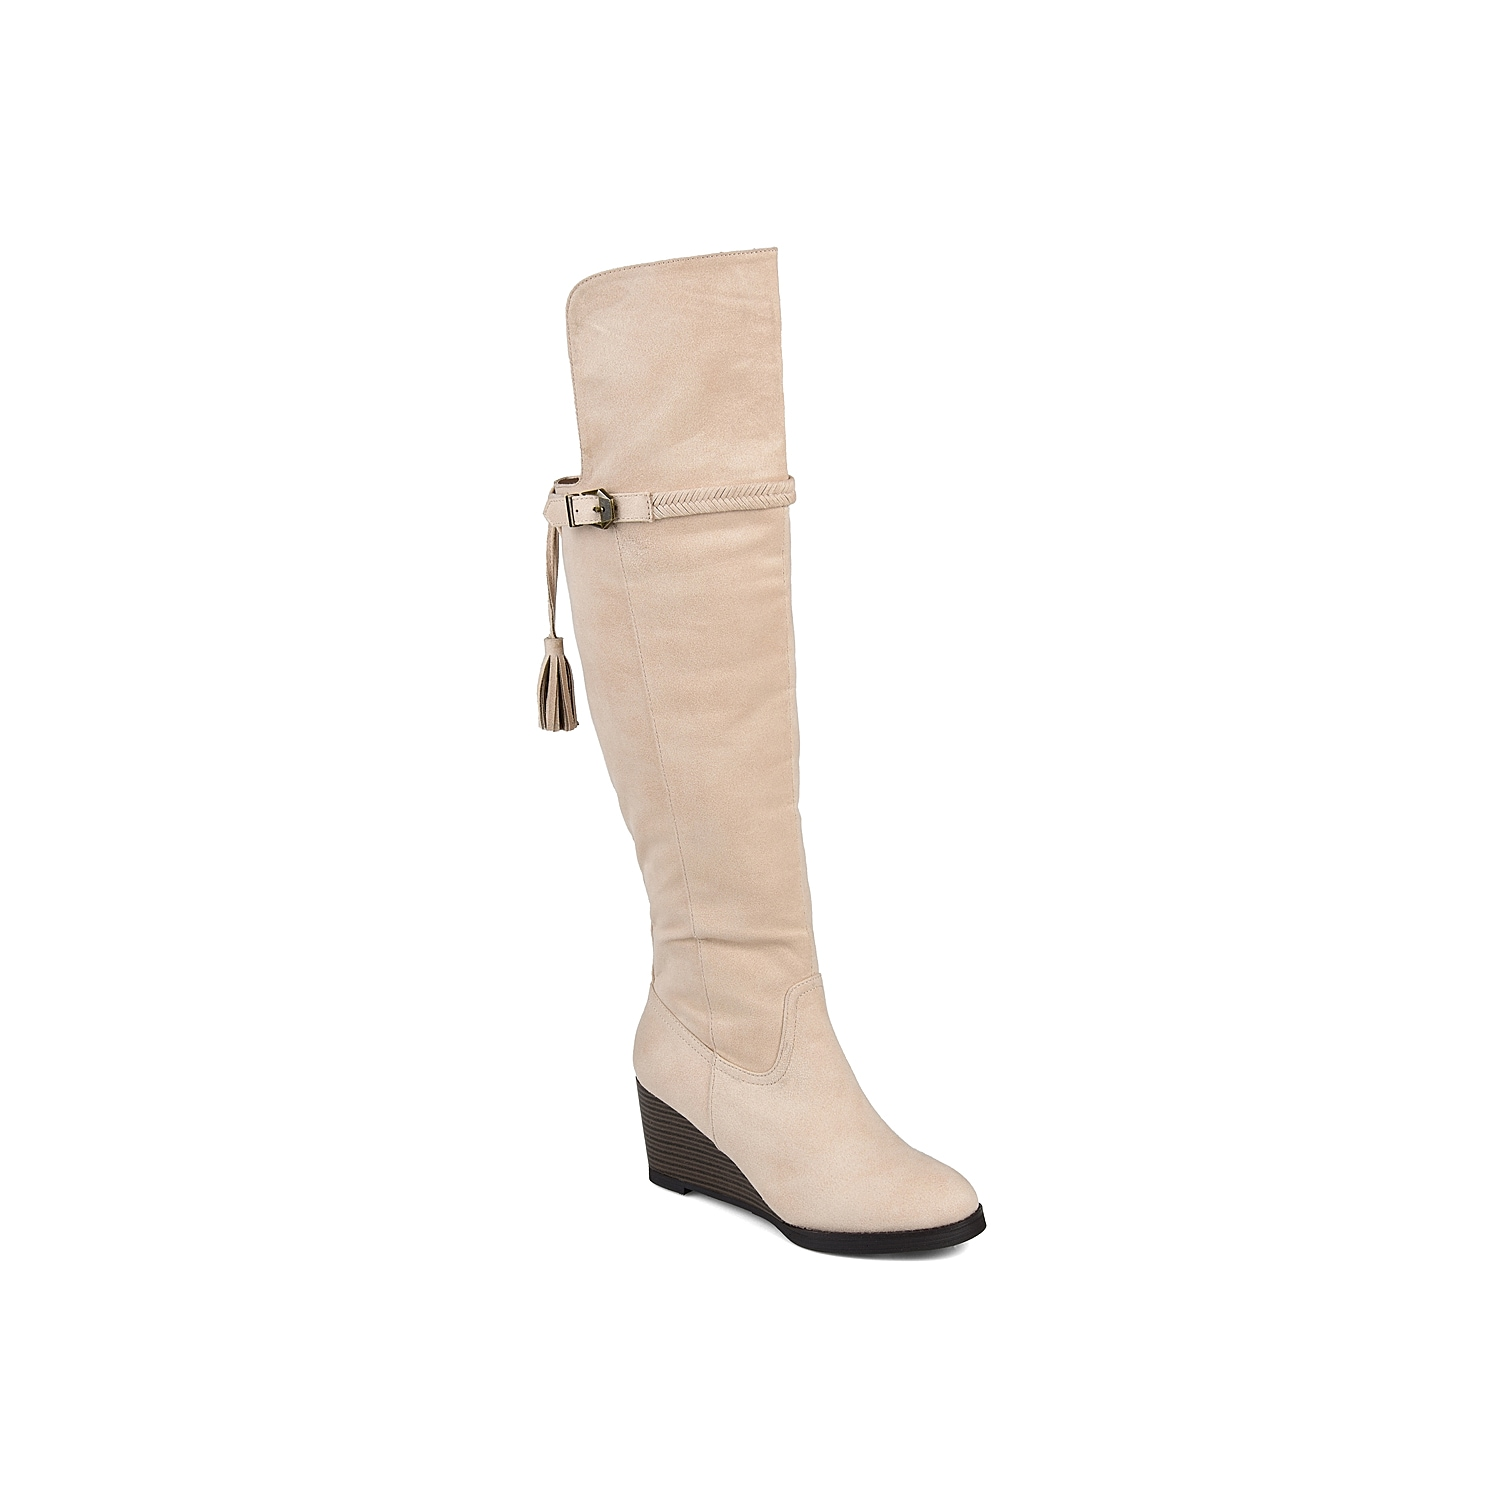 Make a serious style statement with the Jezebel over the knee boot from Journee Collection. With an asymmetrical topline and tassel accent, this tall wedge boot will add unique style to any outfit.Click here for Boot Measuring Guide.